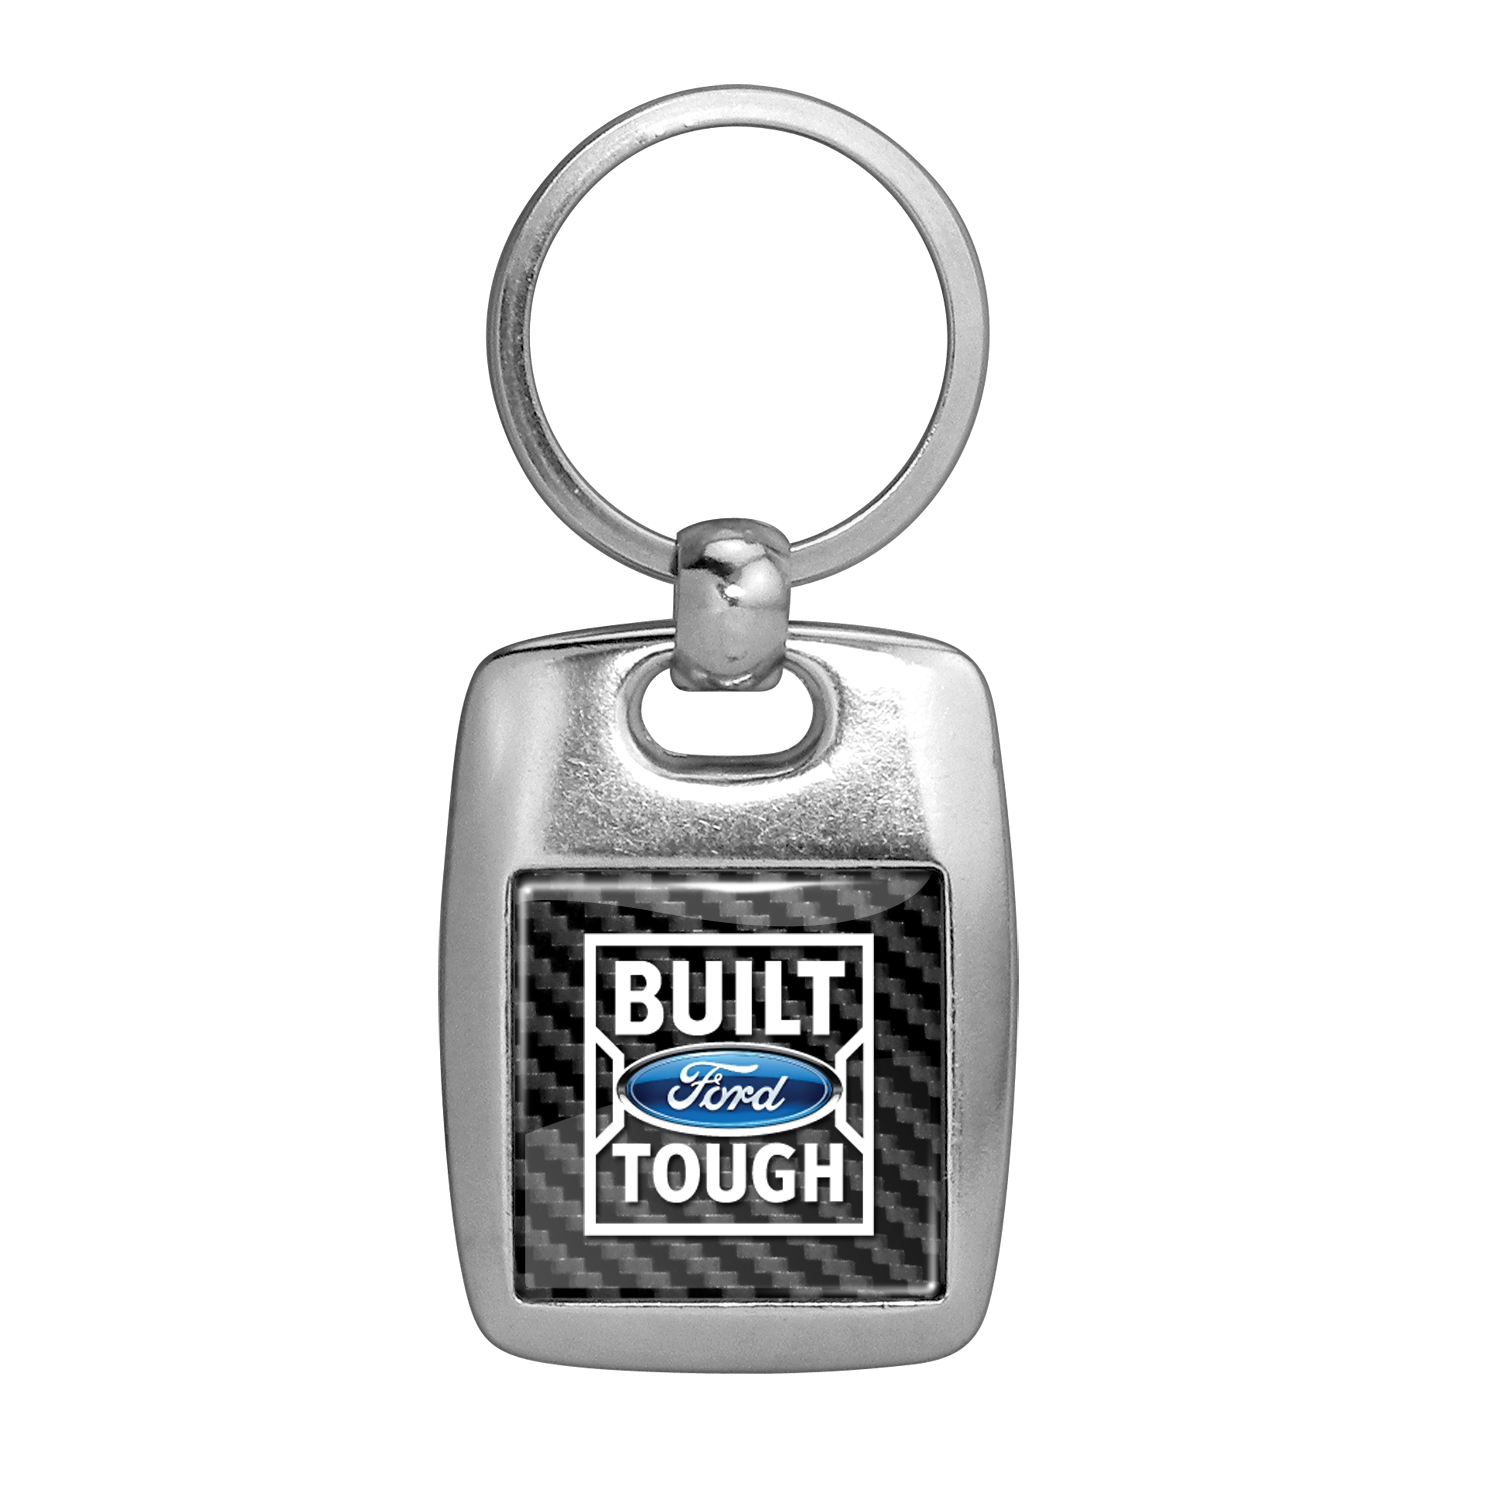 Ford Built Ford Tough in Color on Carbon Fiber Backing Brush Metal Key Chain